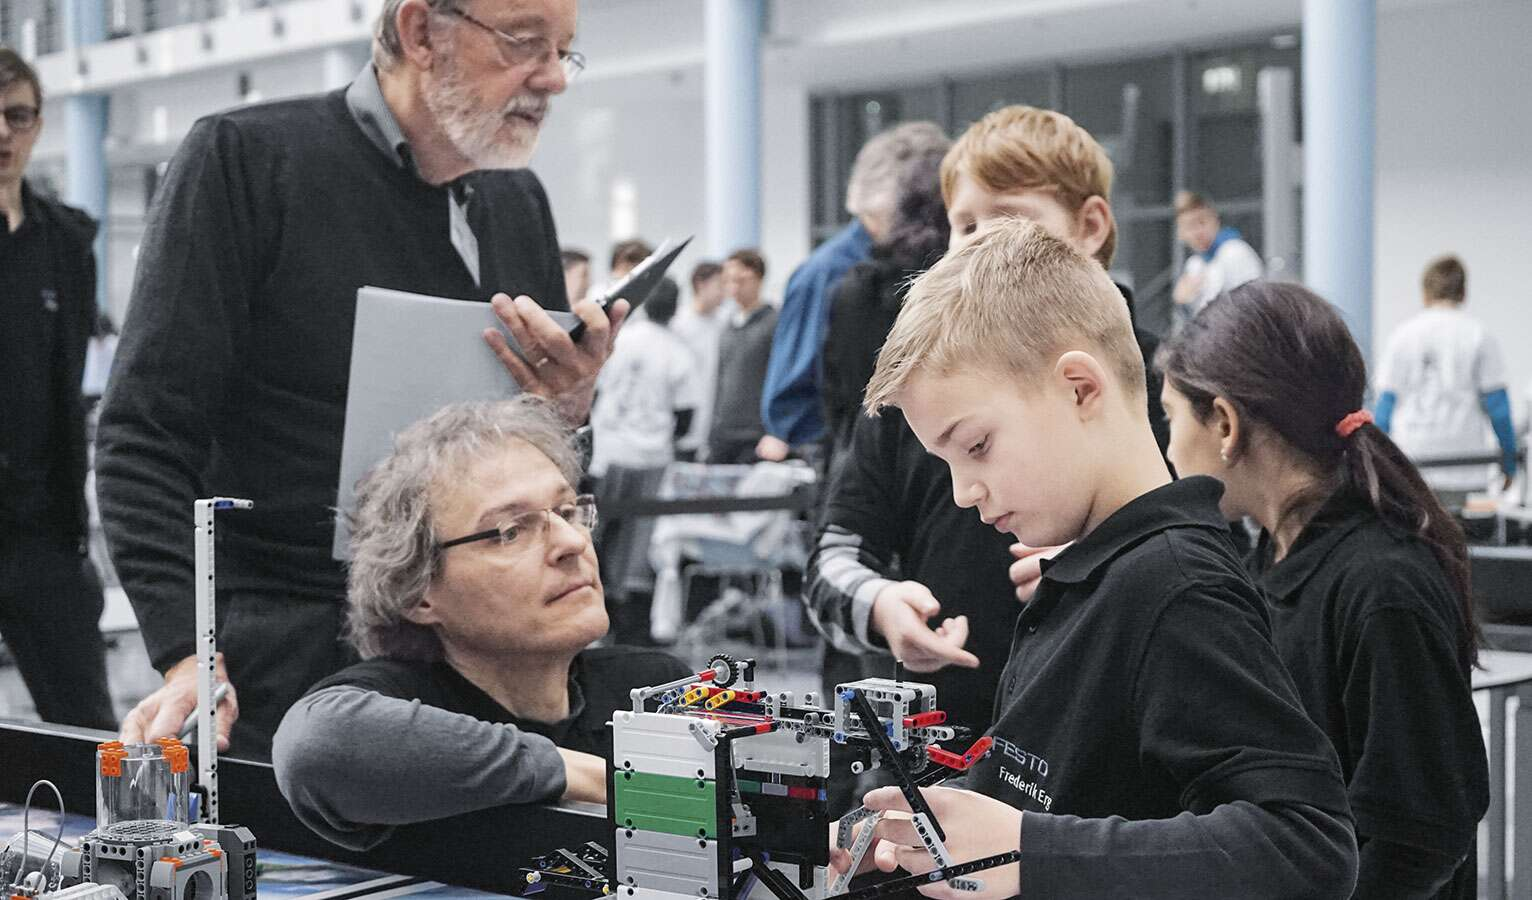 The children and young people worked on a common task like real engineers. For example, they programmed a fully automatic robot based on the LEGO® Mindstorms system.